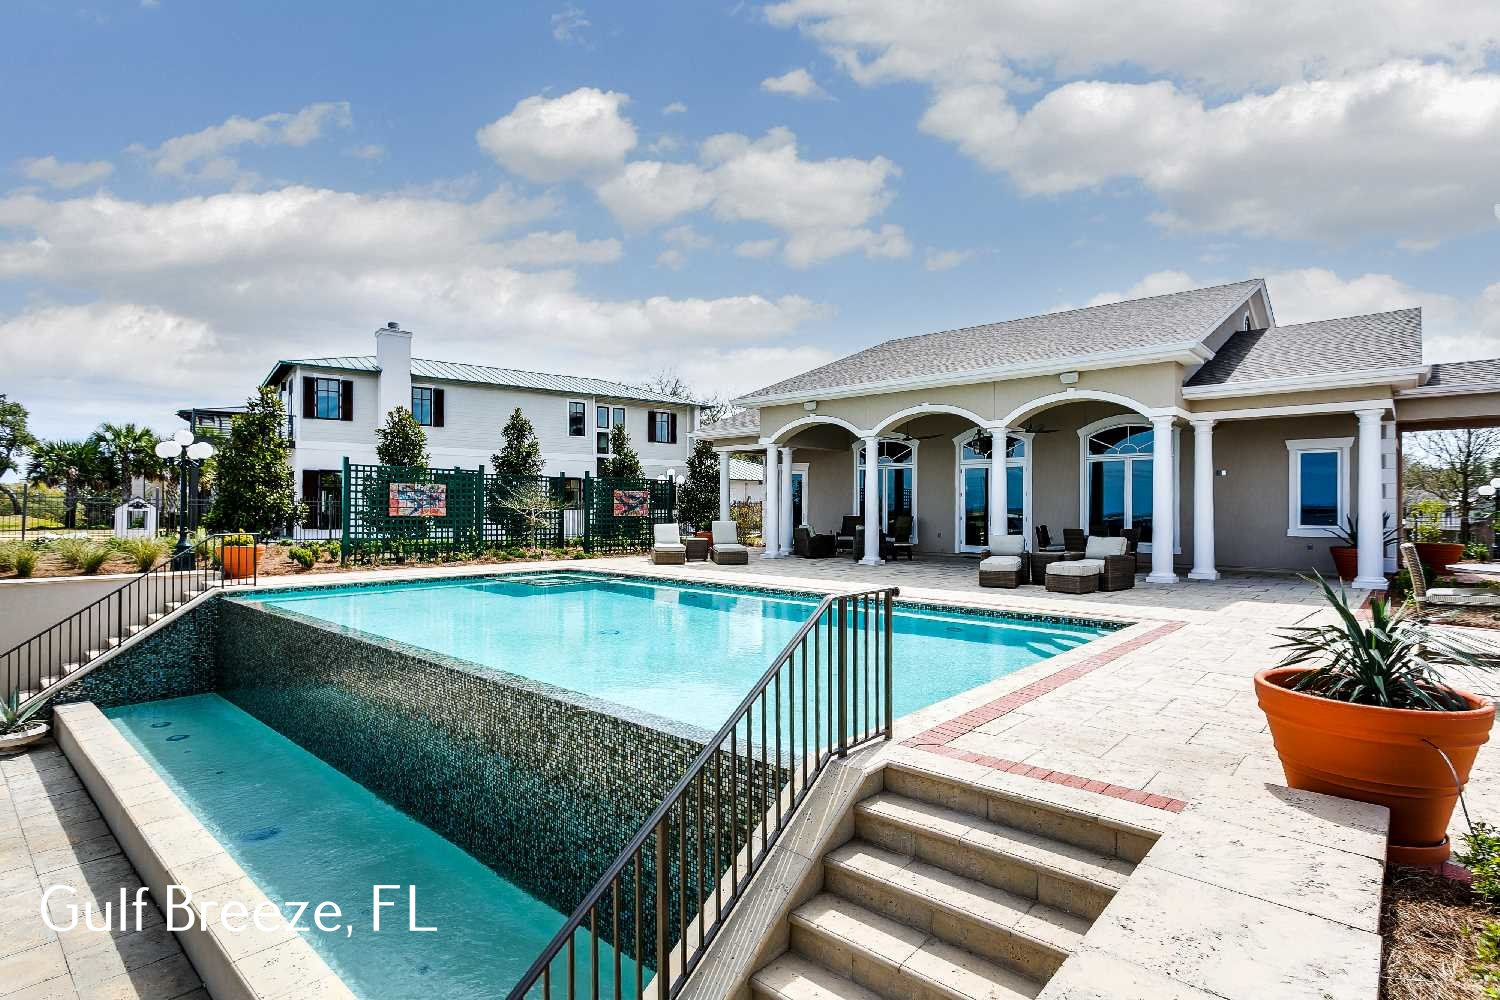 Luxury Inground Pool Design - one of many by the luxury pool builders Southern Poolscapes - High End Luxury Pool Specialists